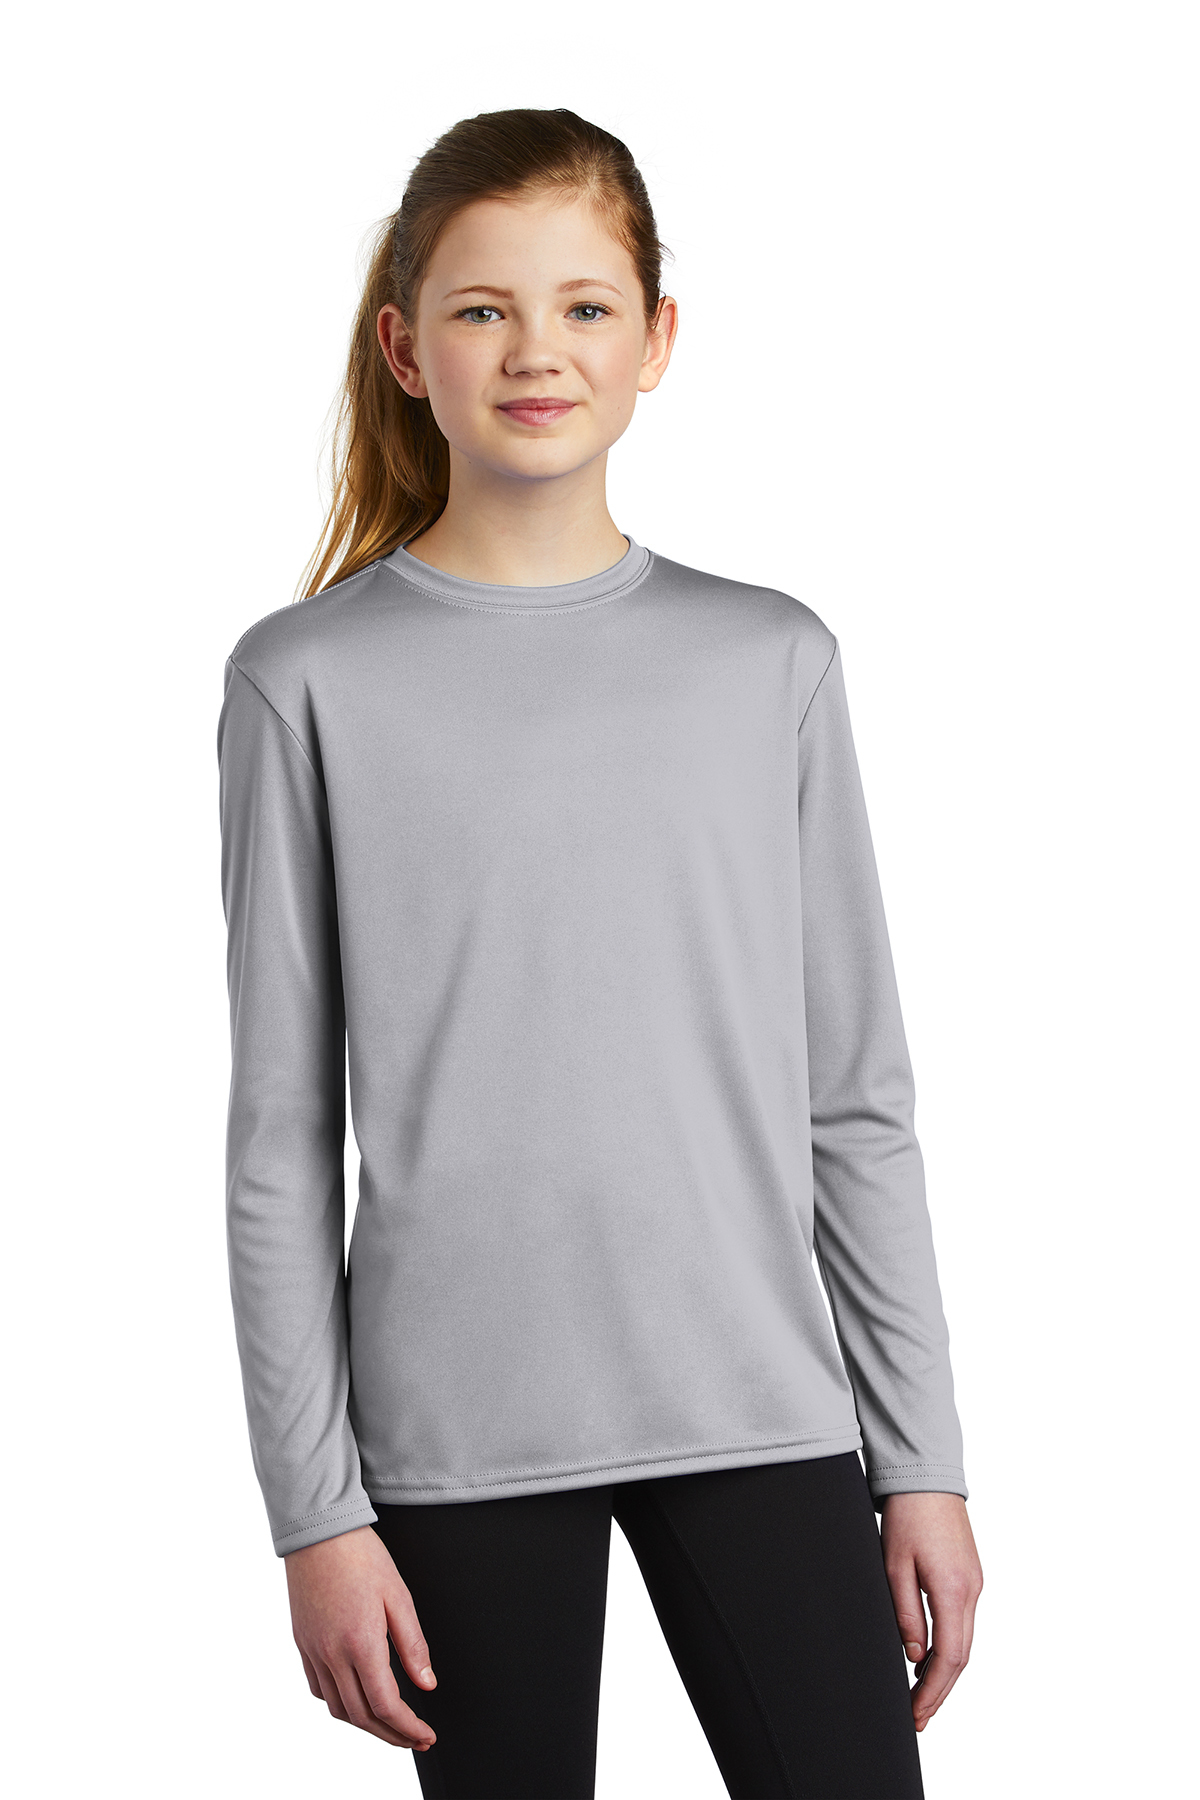 Port & Company PC380YLS - Youth Long Sleeve Performance ...